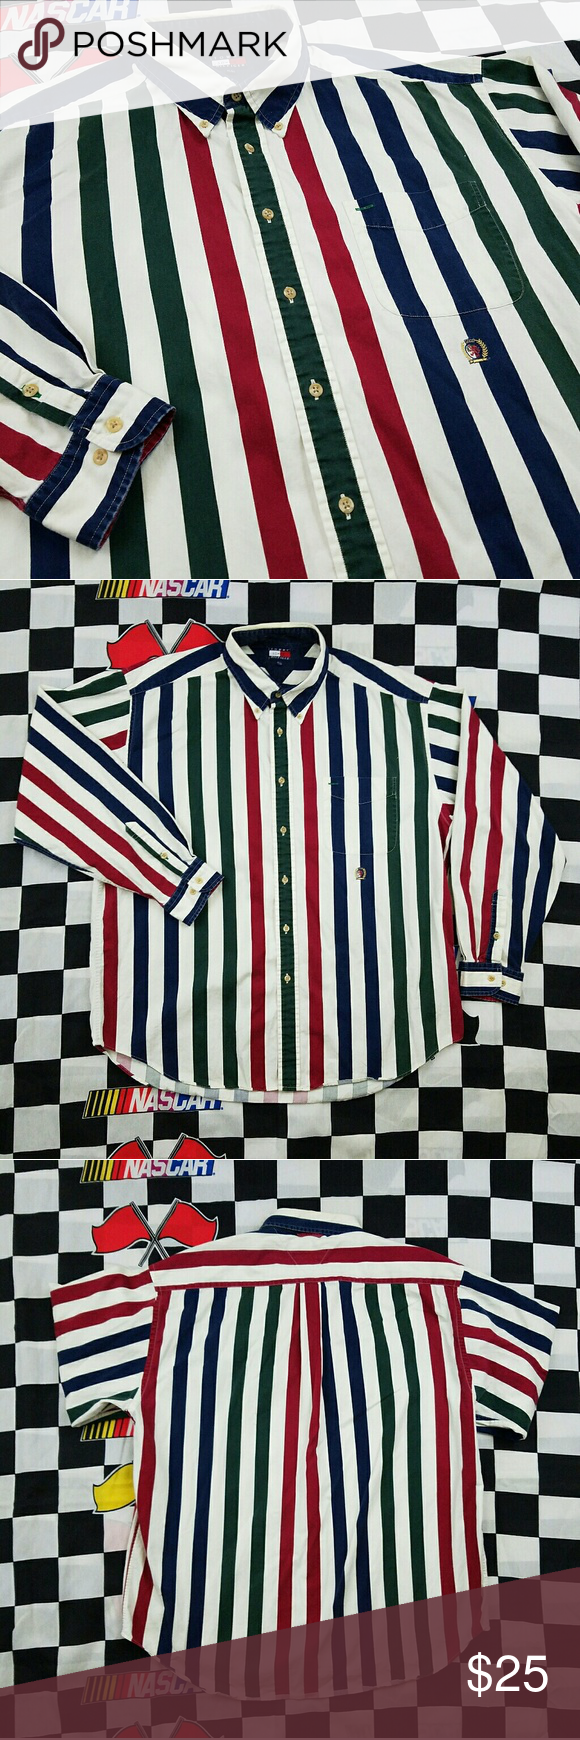 19126dfe1 Vtg 90s Tommy Hilfiger Mens Shirt XL Button Front Vintage Tommy Hilfiger  Striped color block multi